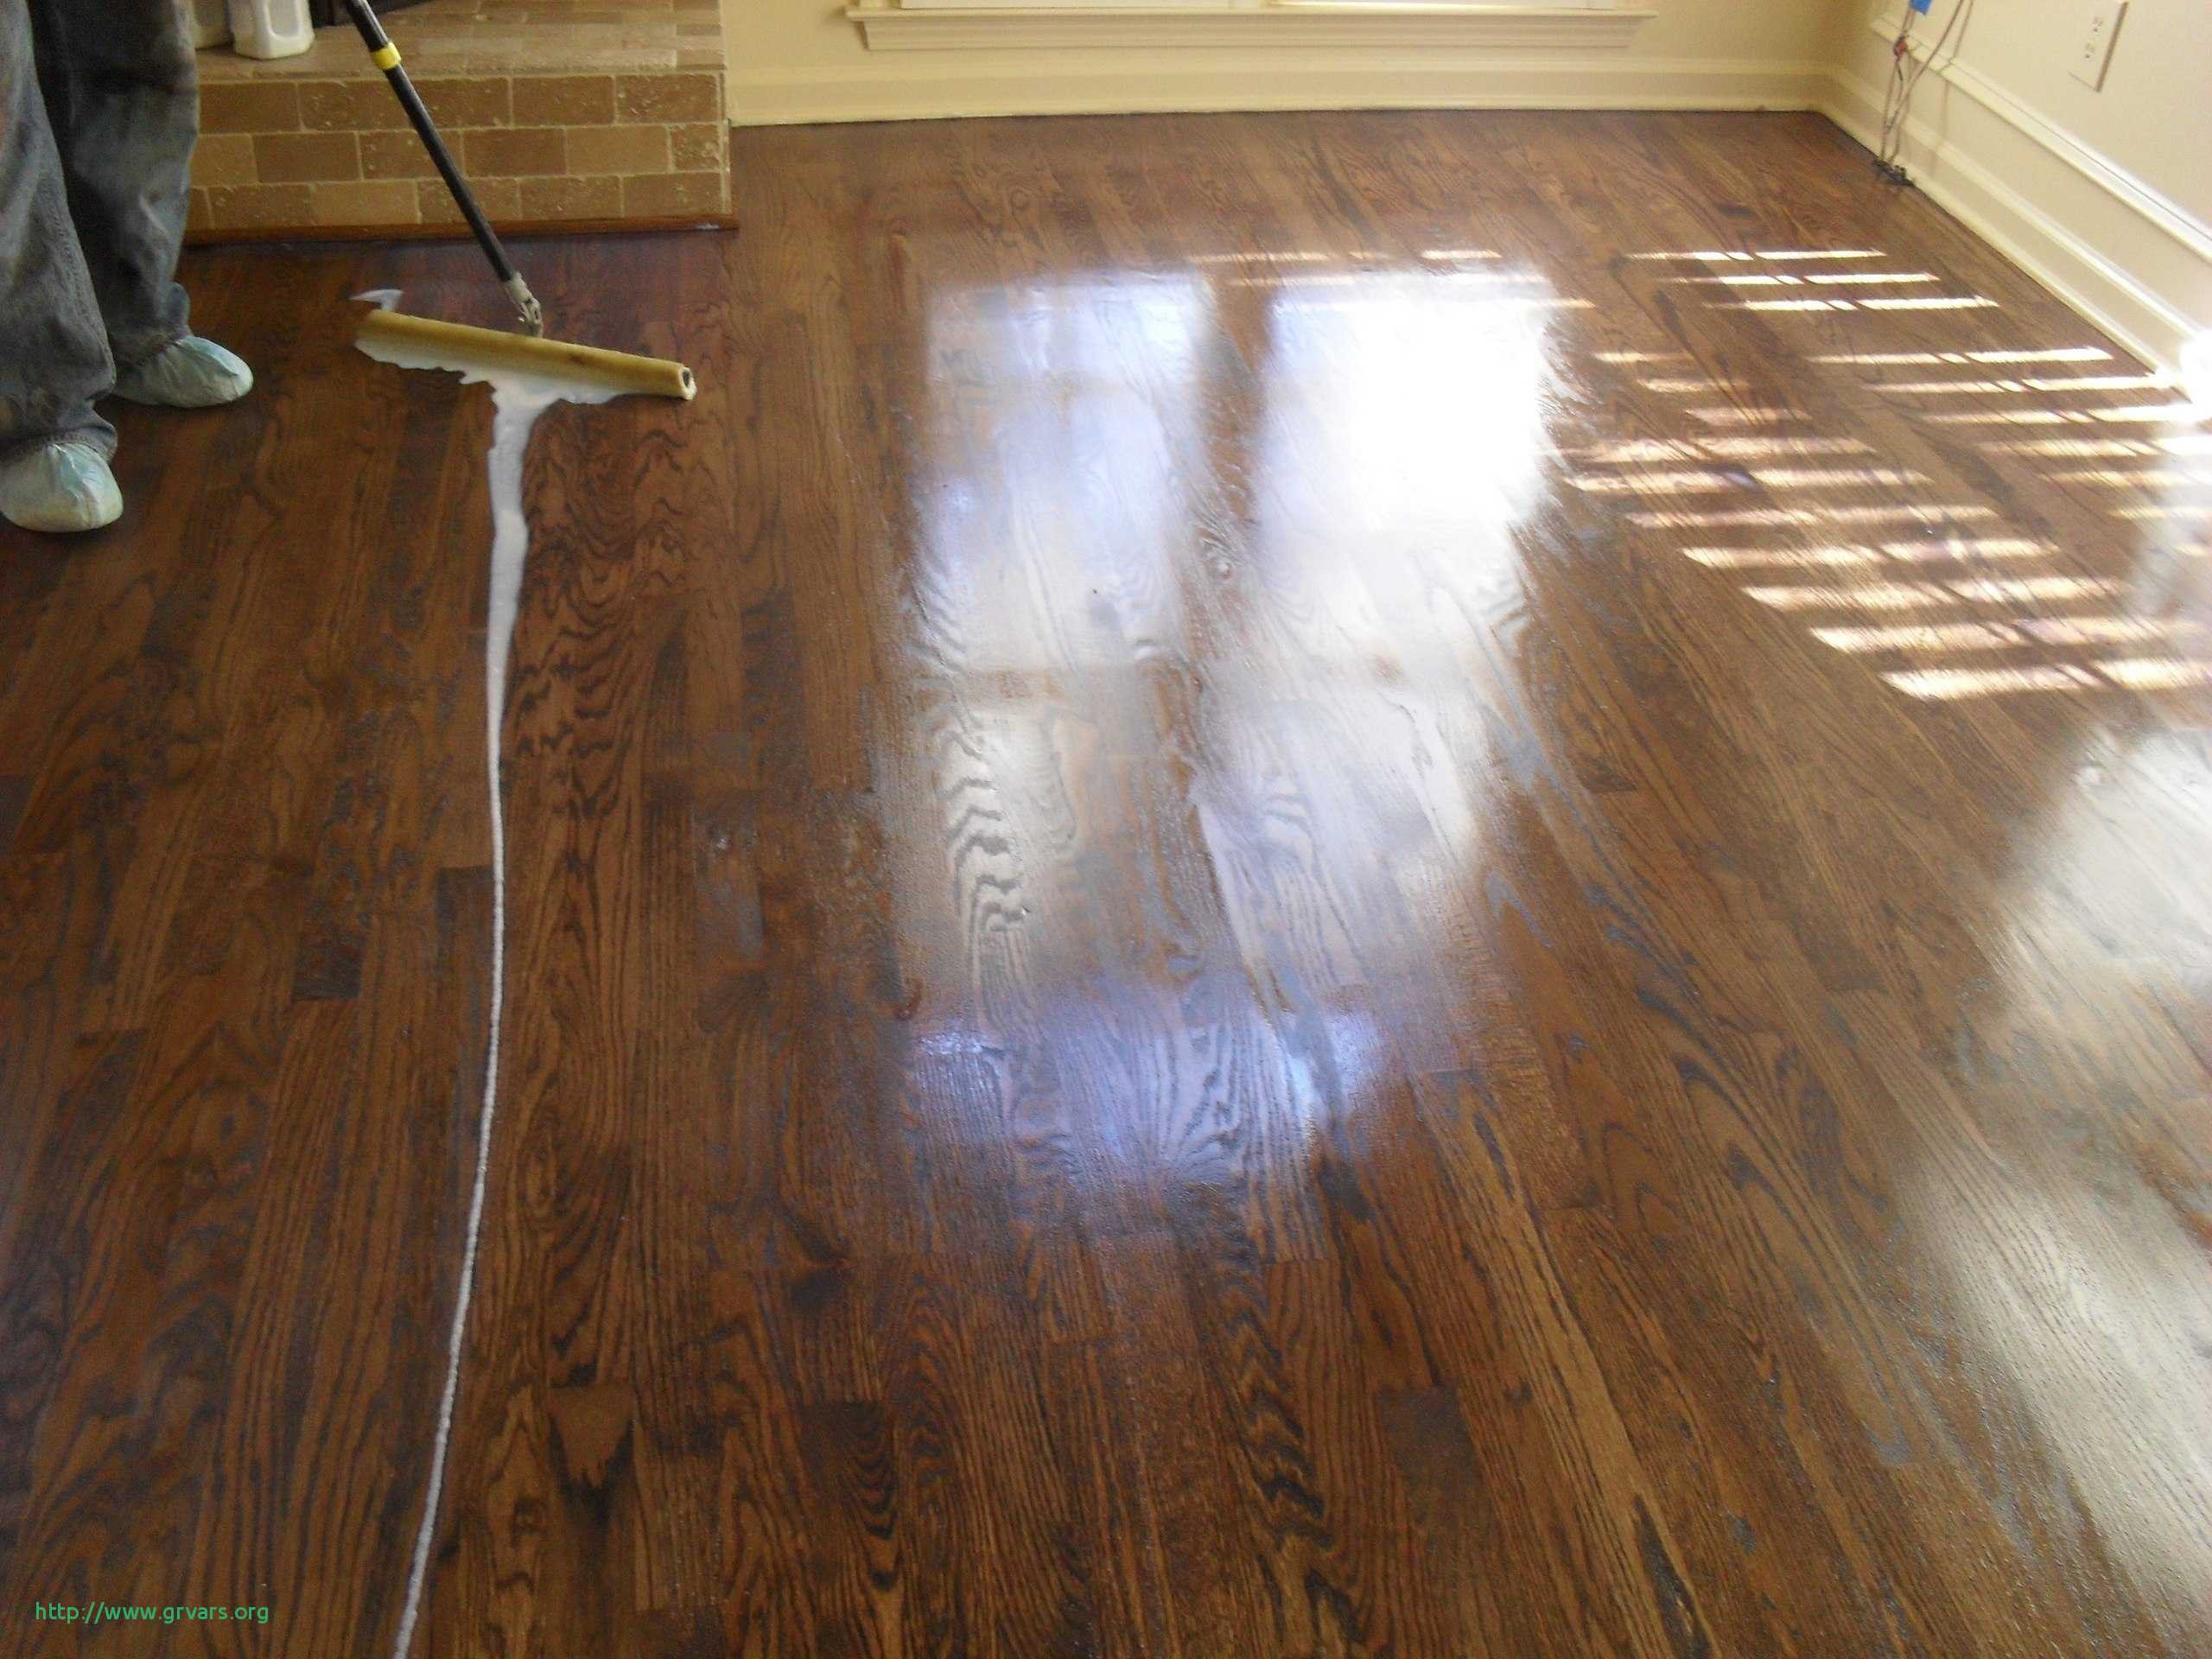 Buffing Hardwood Floors Cost Of Image Number 6563 From Post Restoring Old Hardwood Floors Will for Nouveau Hardwood Floors Yourself Ideas Restoring Old Will Inspirant Redo without Sanding Podemosleganes Lovely Refinishingod Pet